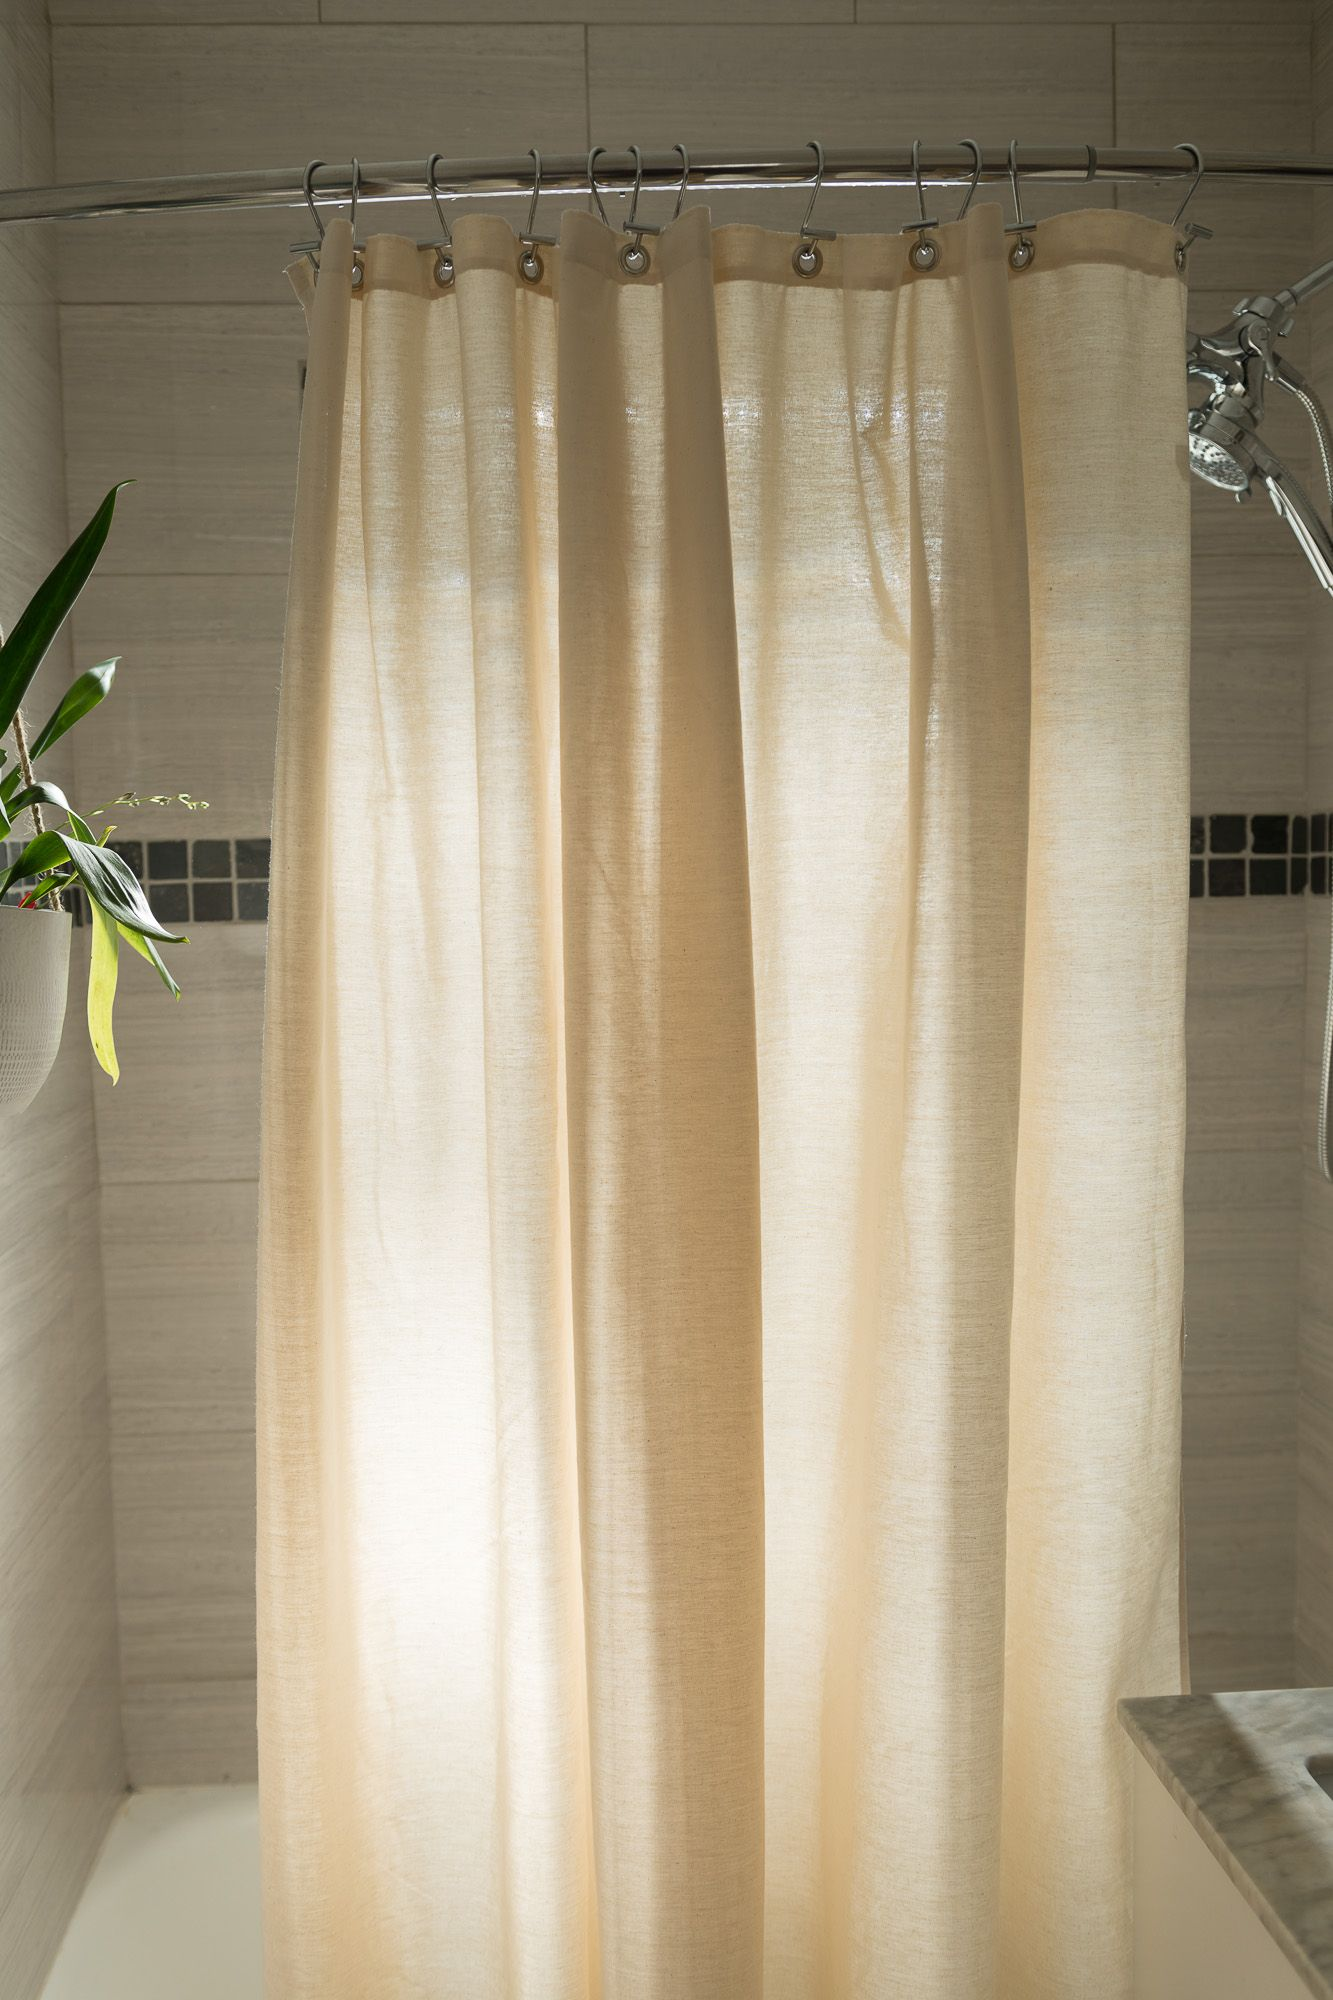 Organic White Cotton Shower Curtain Bath Tub Stall Sizes